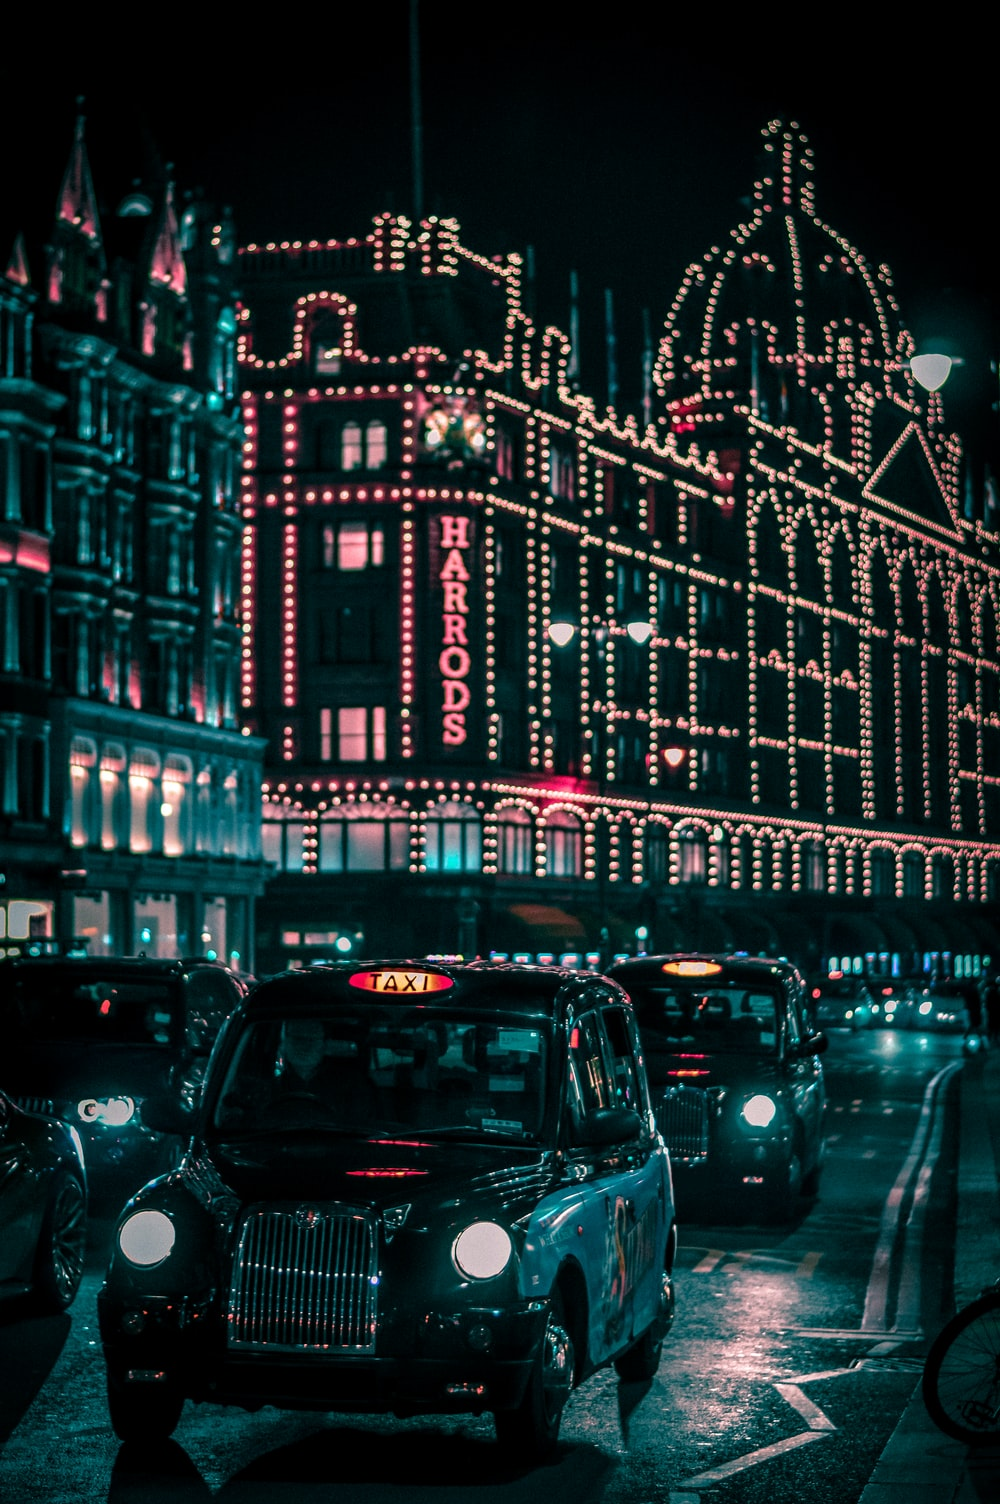 black taxi in the street passing trough Harrods Mall during nighttime